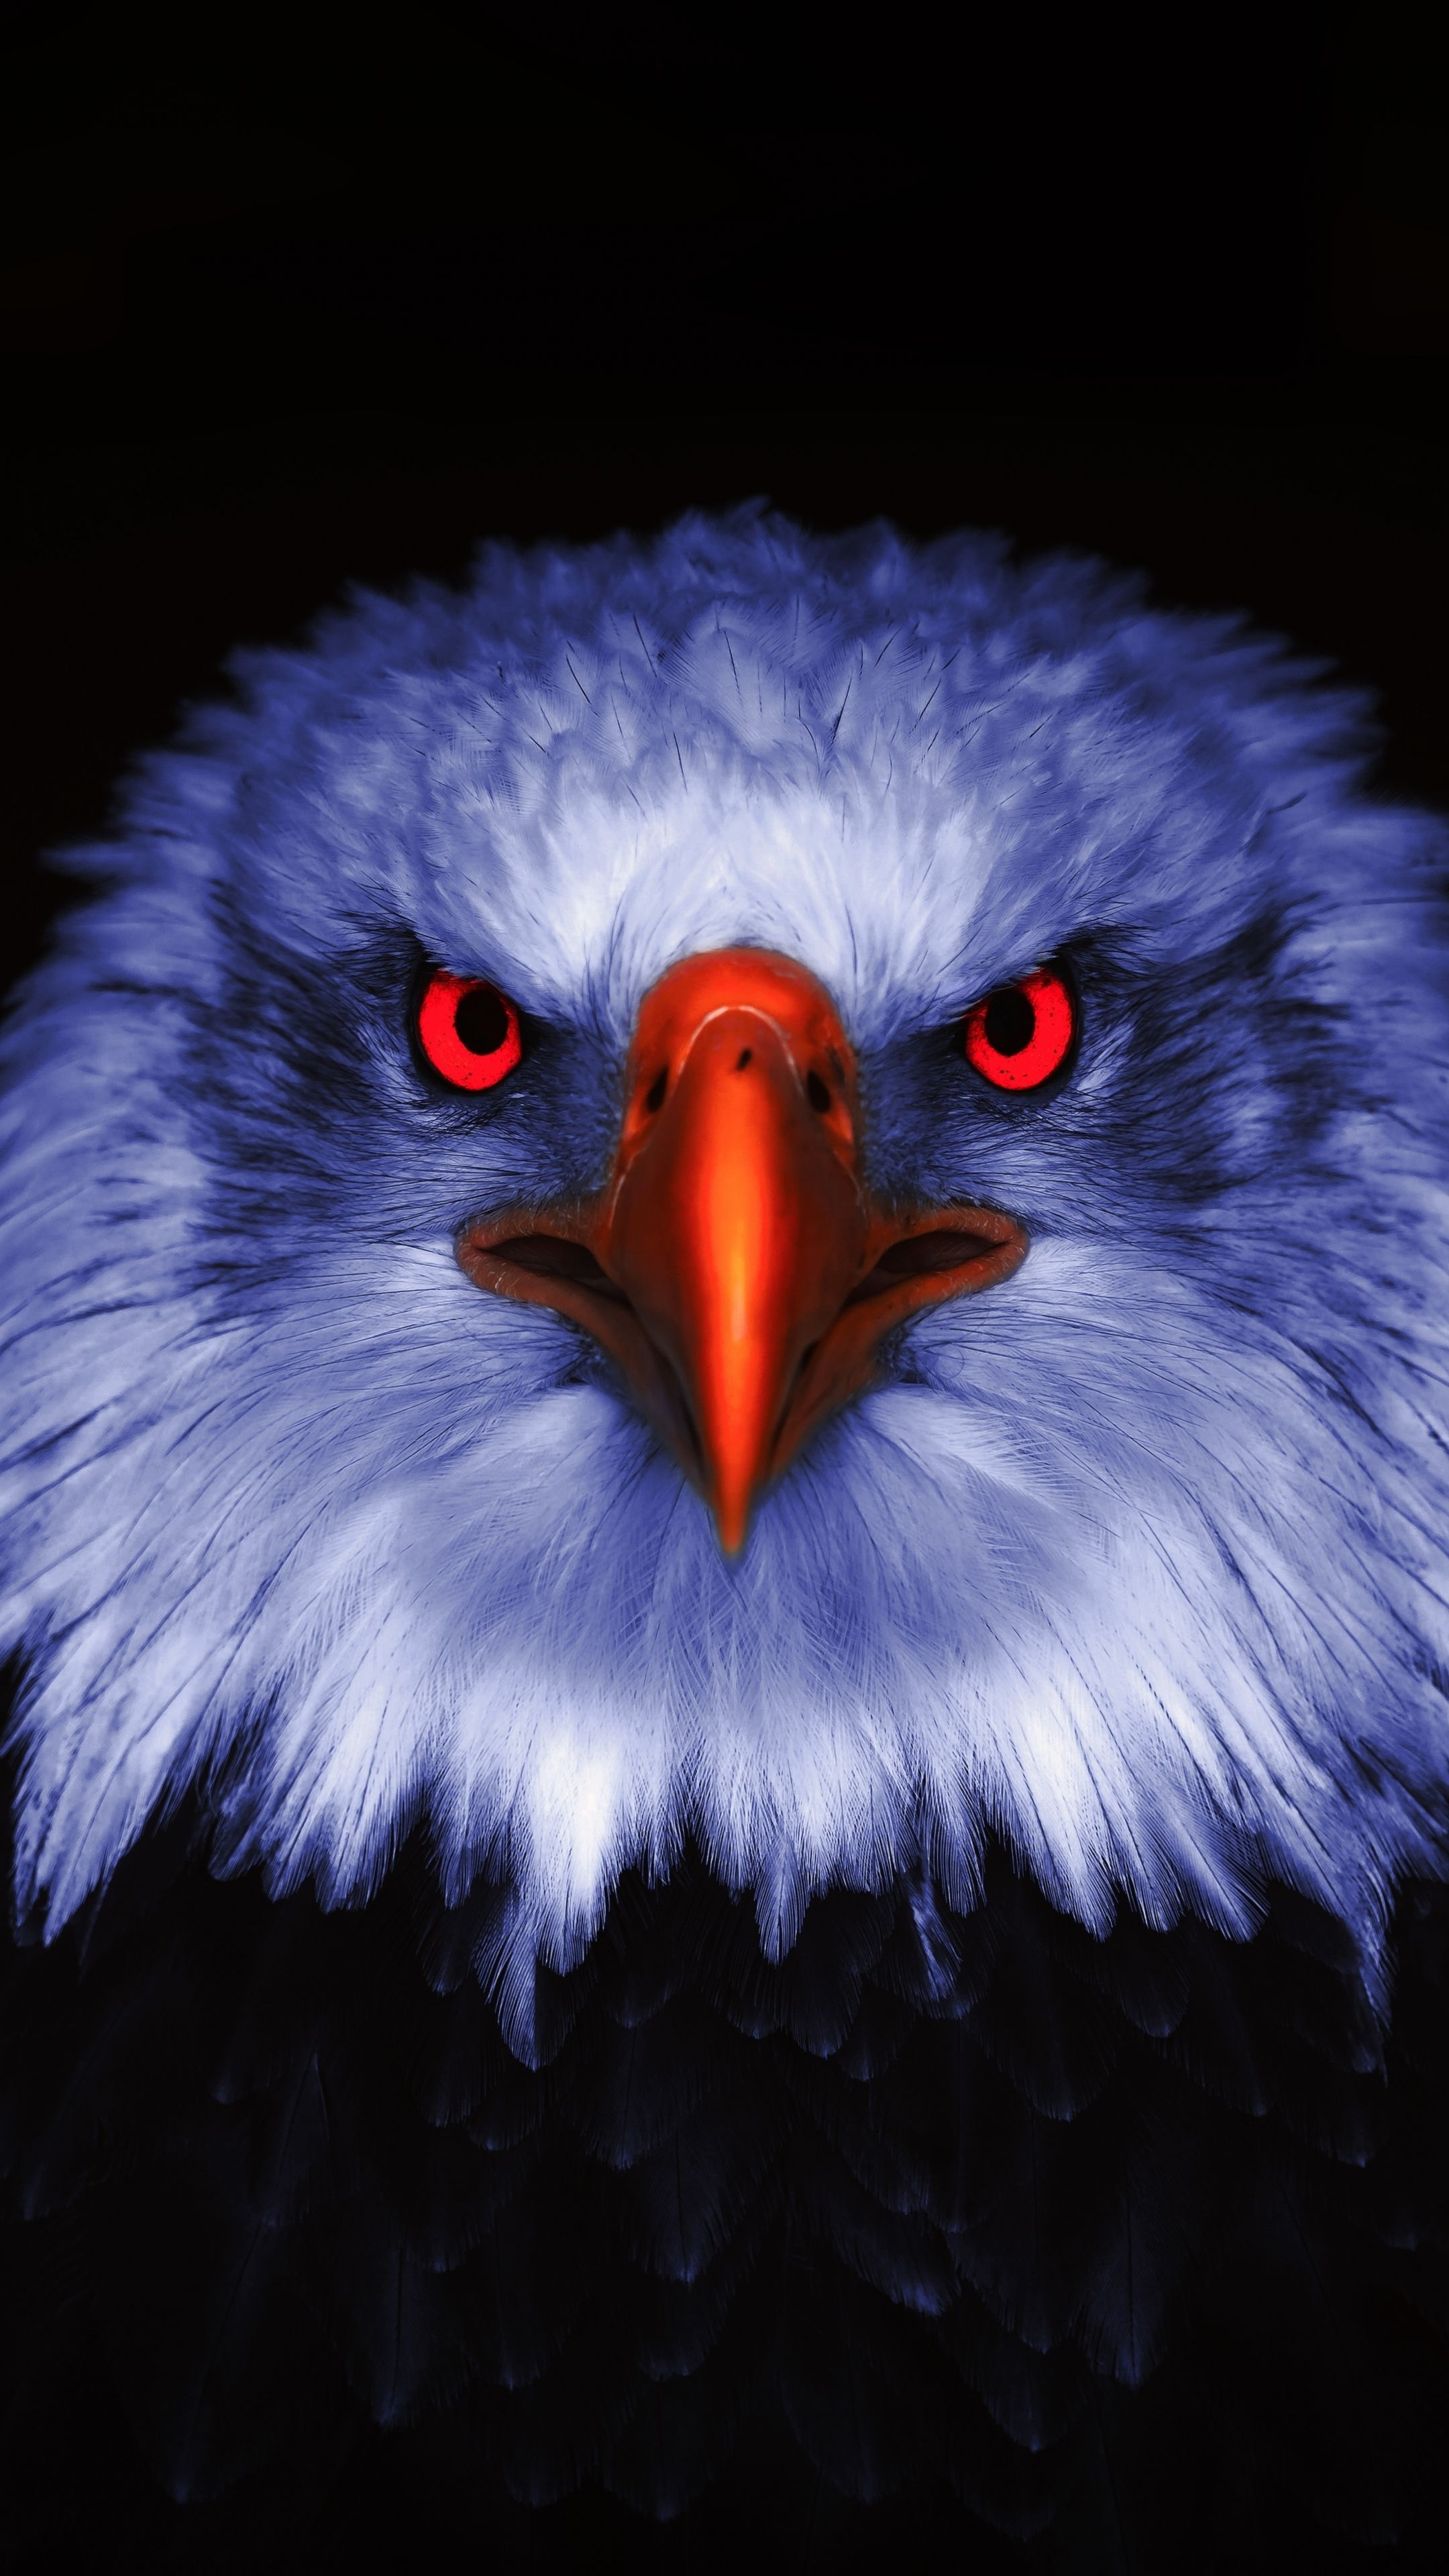 2160x3840 Eagle Raptor Red Eyes Close Up Wallpaper In 2020 Eagle Wallpaper Animals Black And White Eagle Artwork